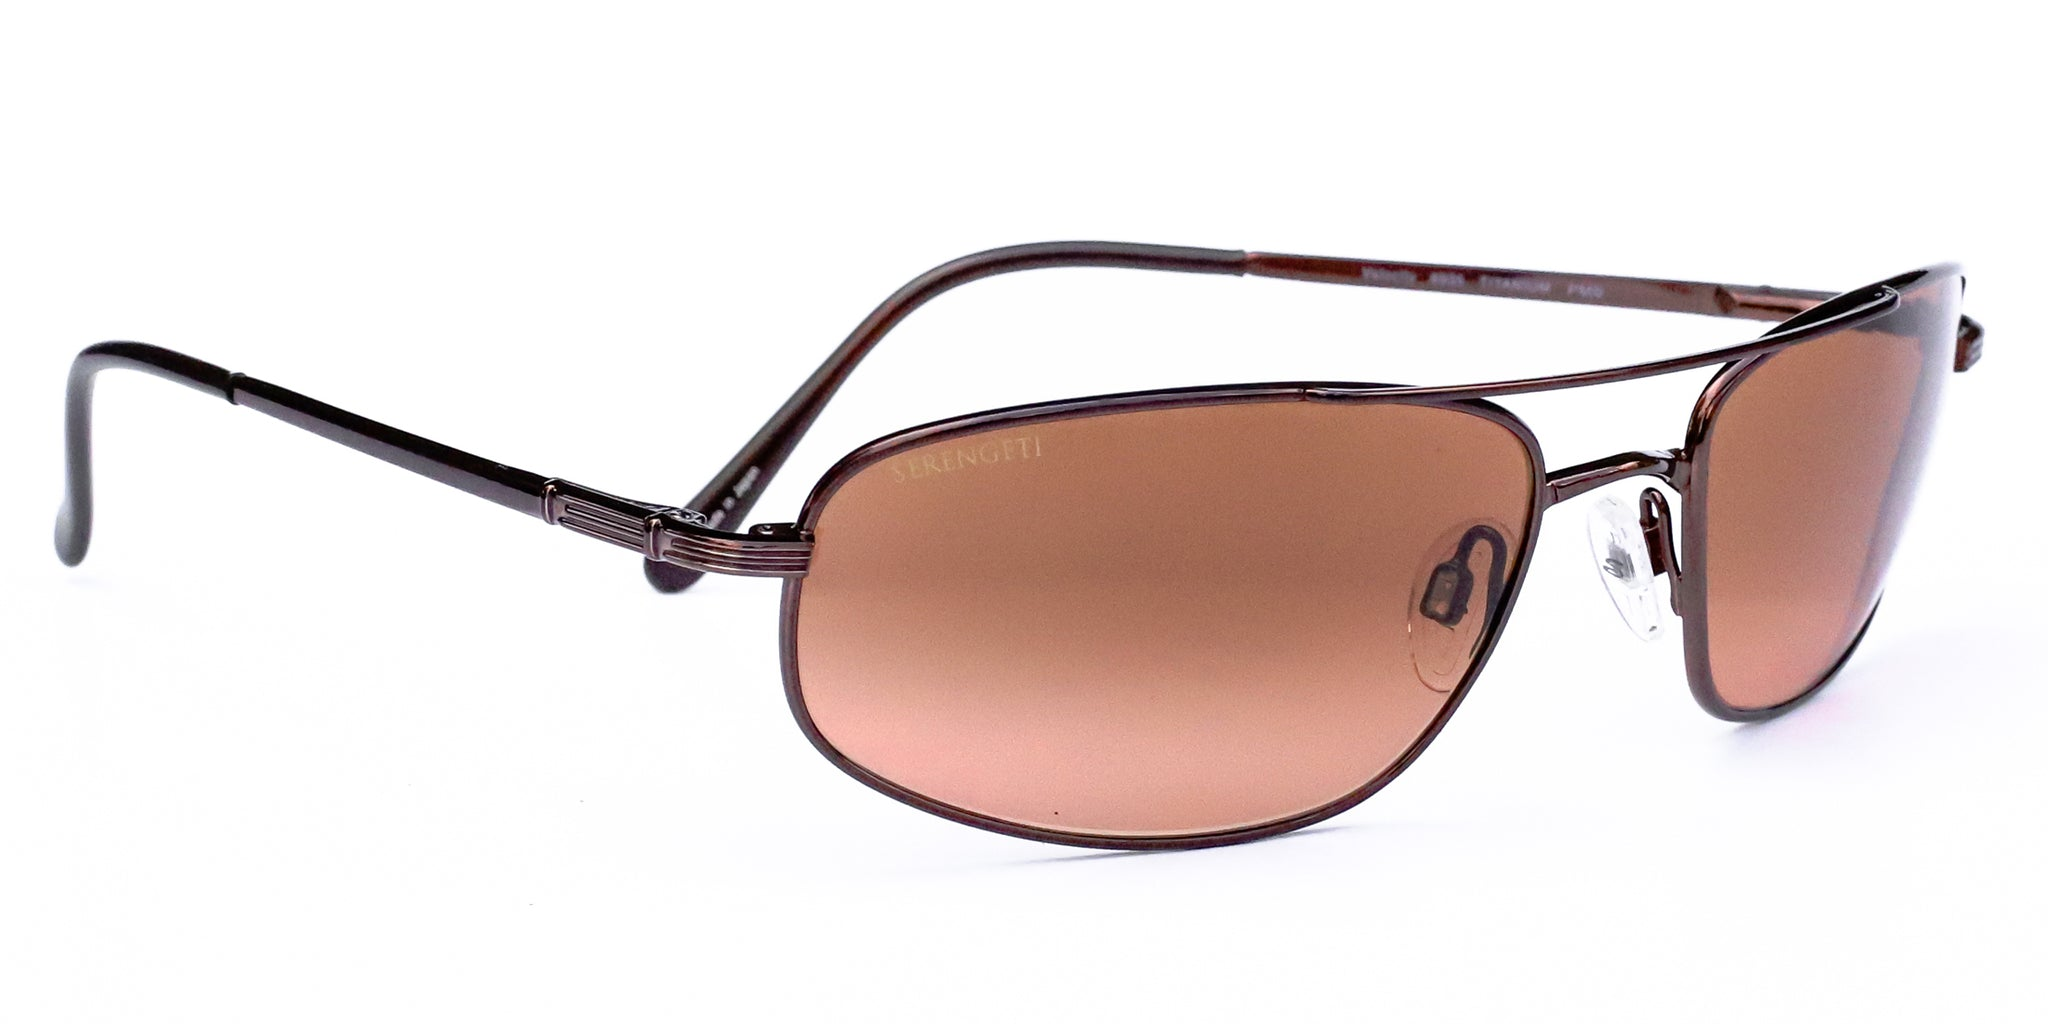 3e6d8c2155a9 Serengeti Velocity 6935 Sunglasses -Drivers Gradient Lenses, Espresso -  Flight Sunglasses